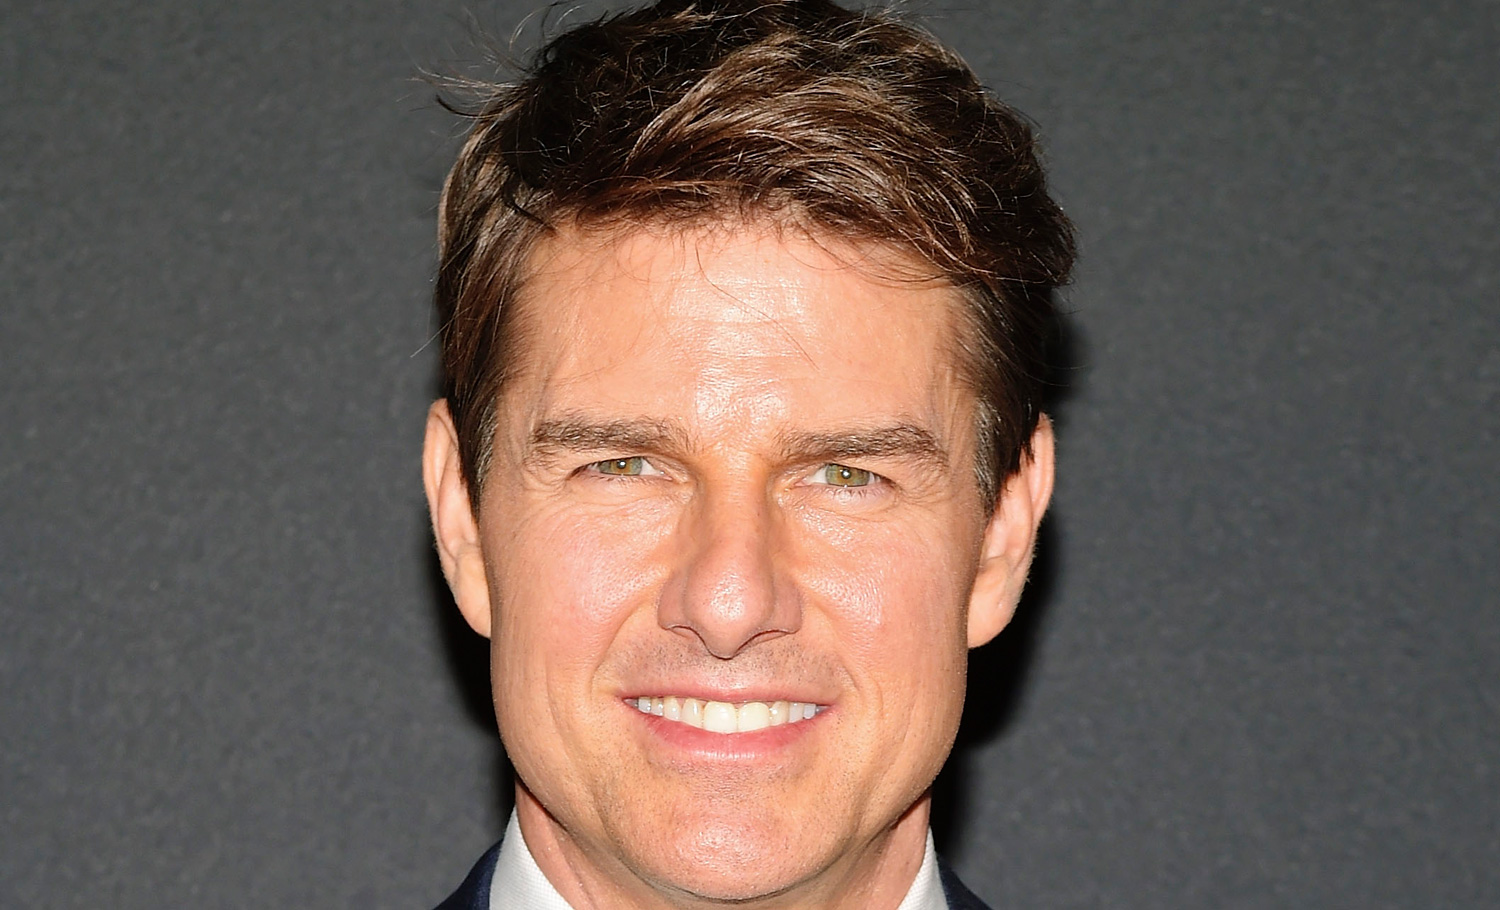 Tom Cruise Reveals Title for 'Top Gun' Sequel | Movies ... Tom Cruise